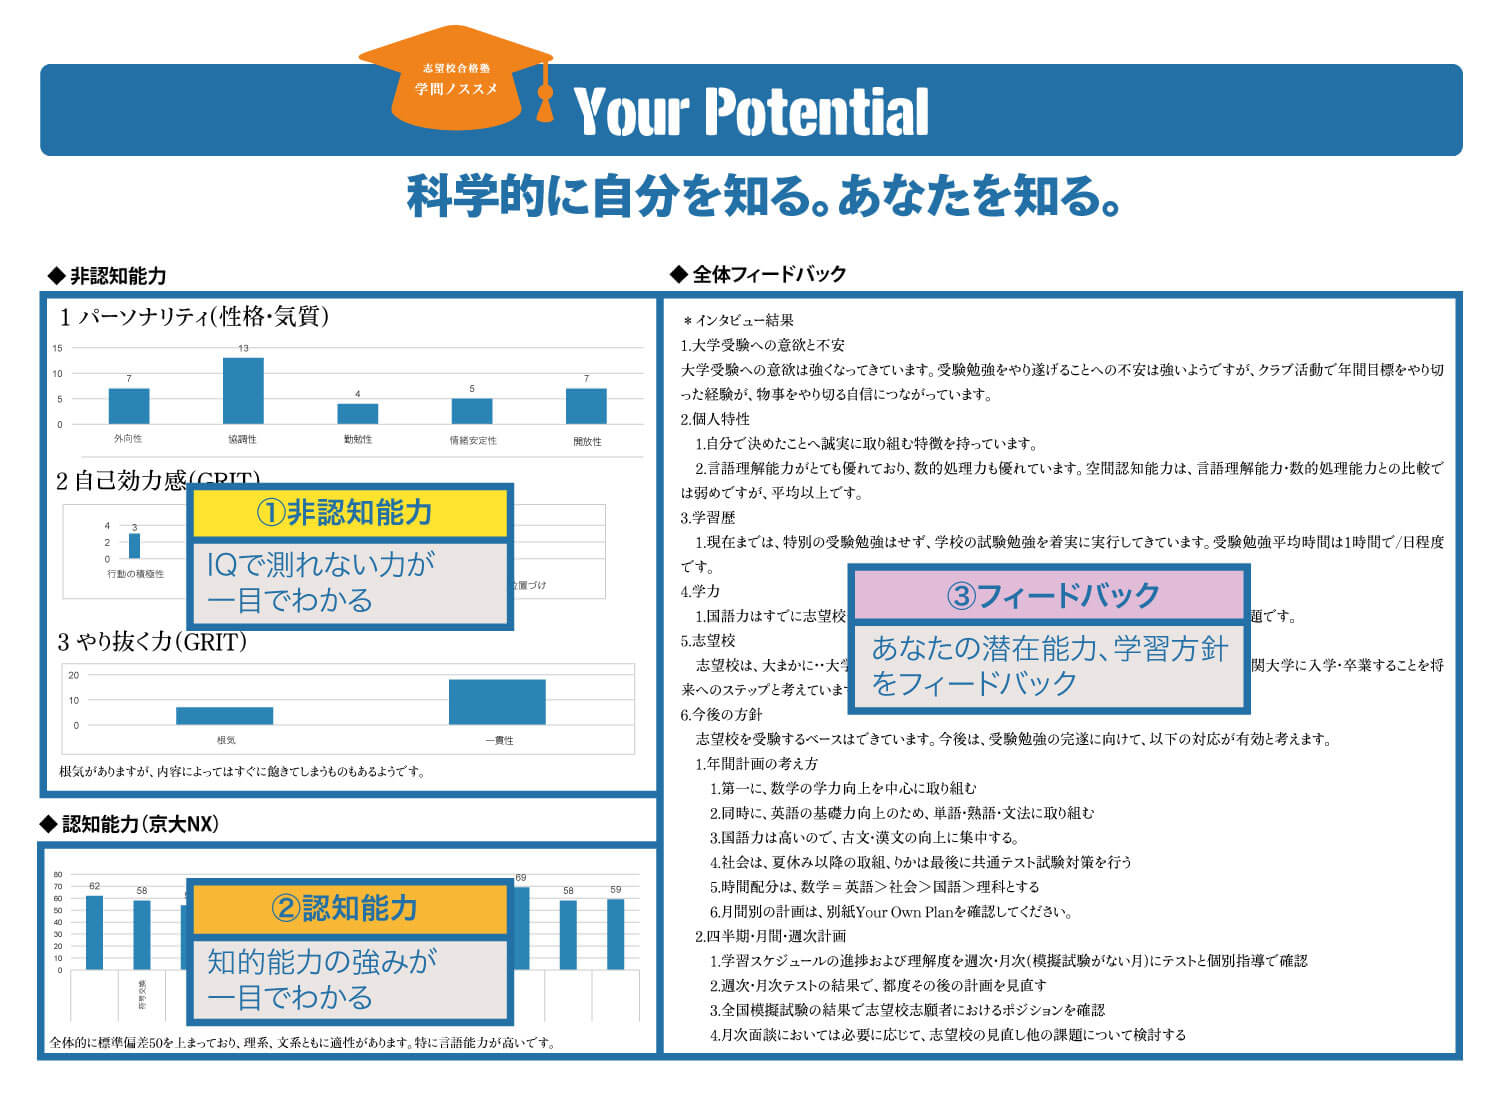 Your Potential レポート